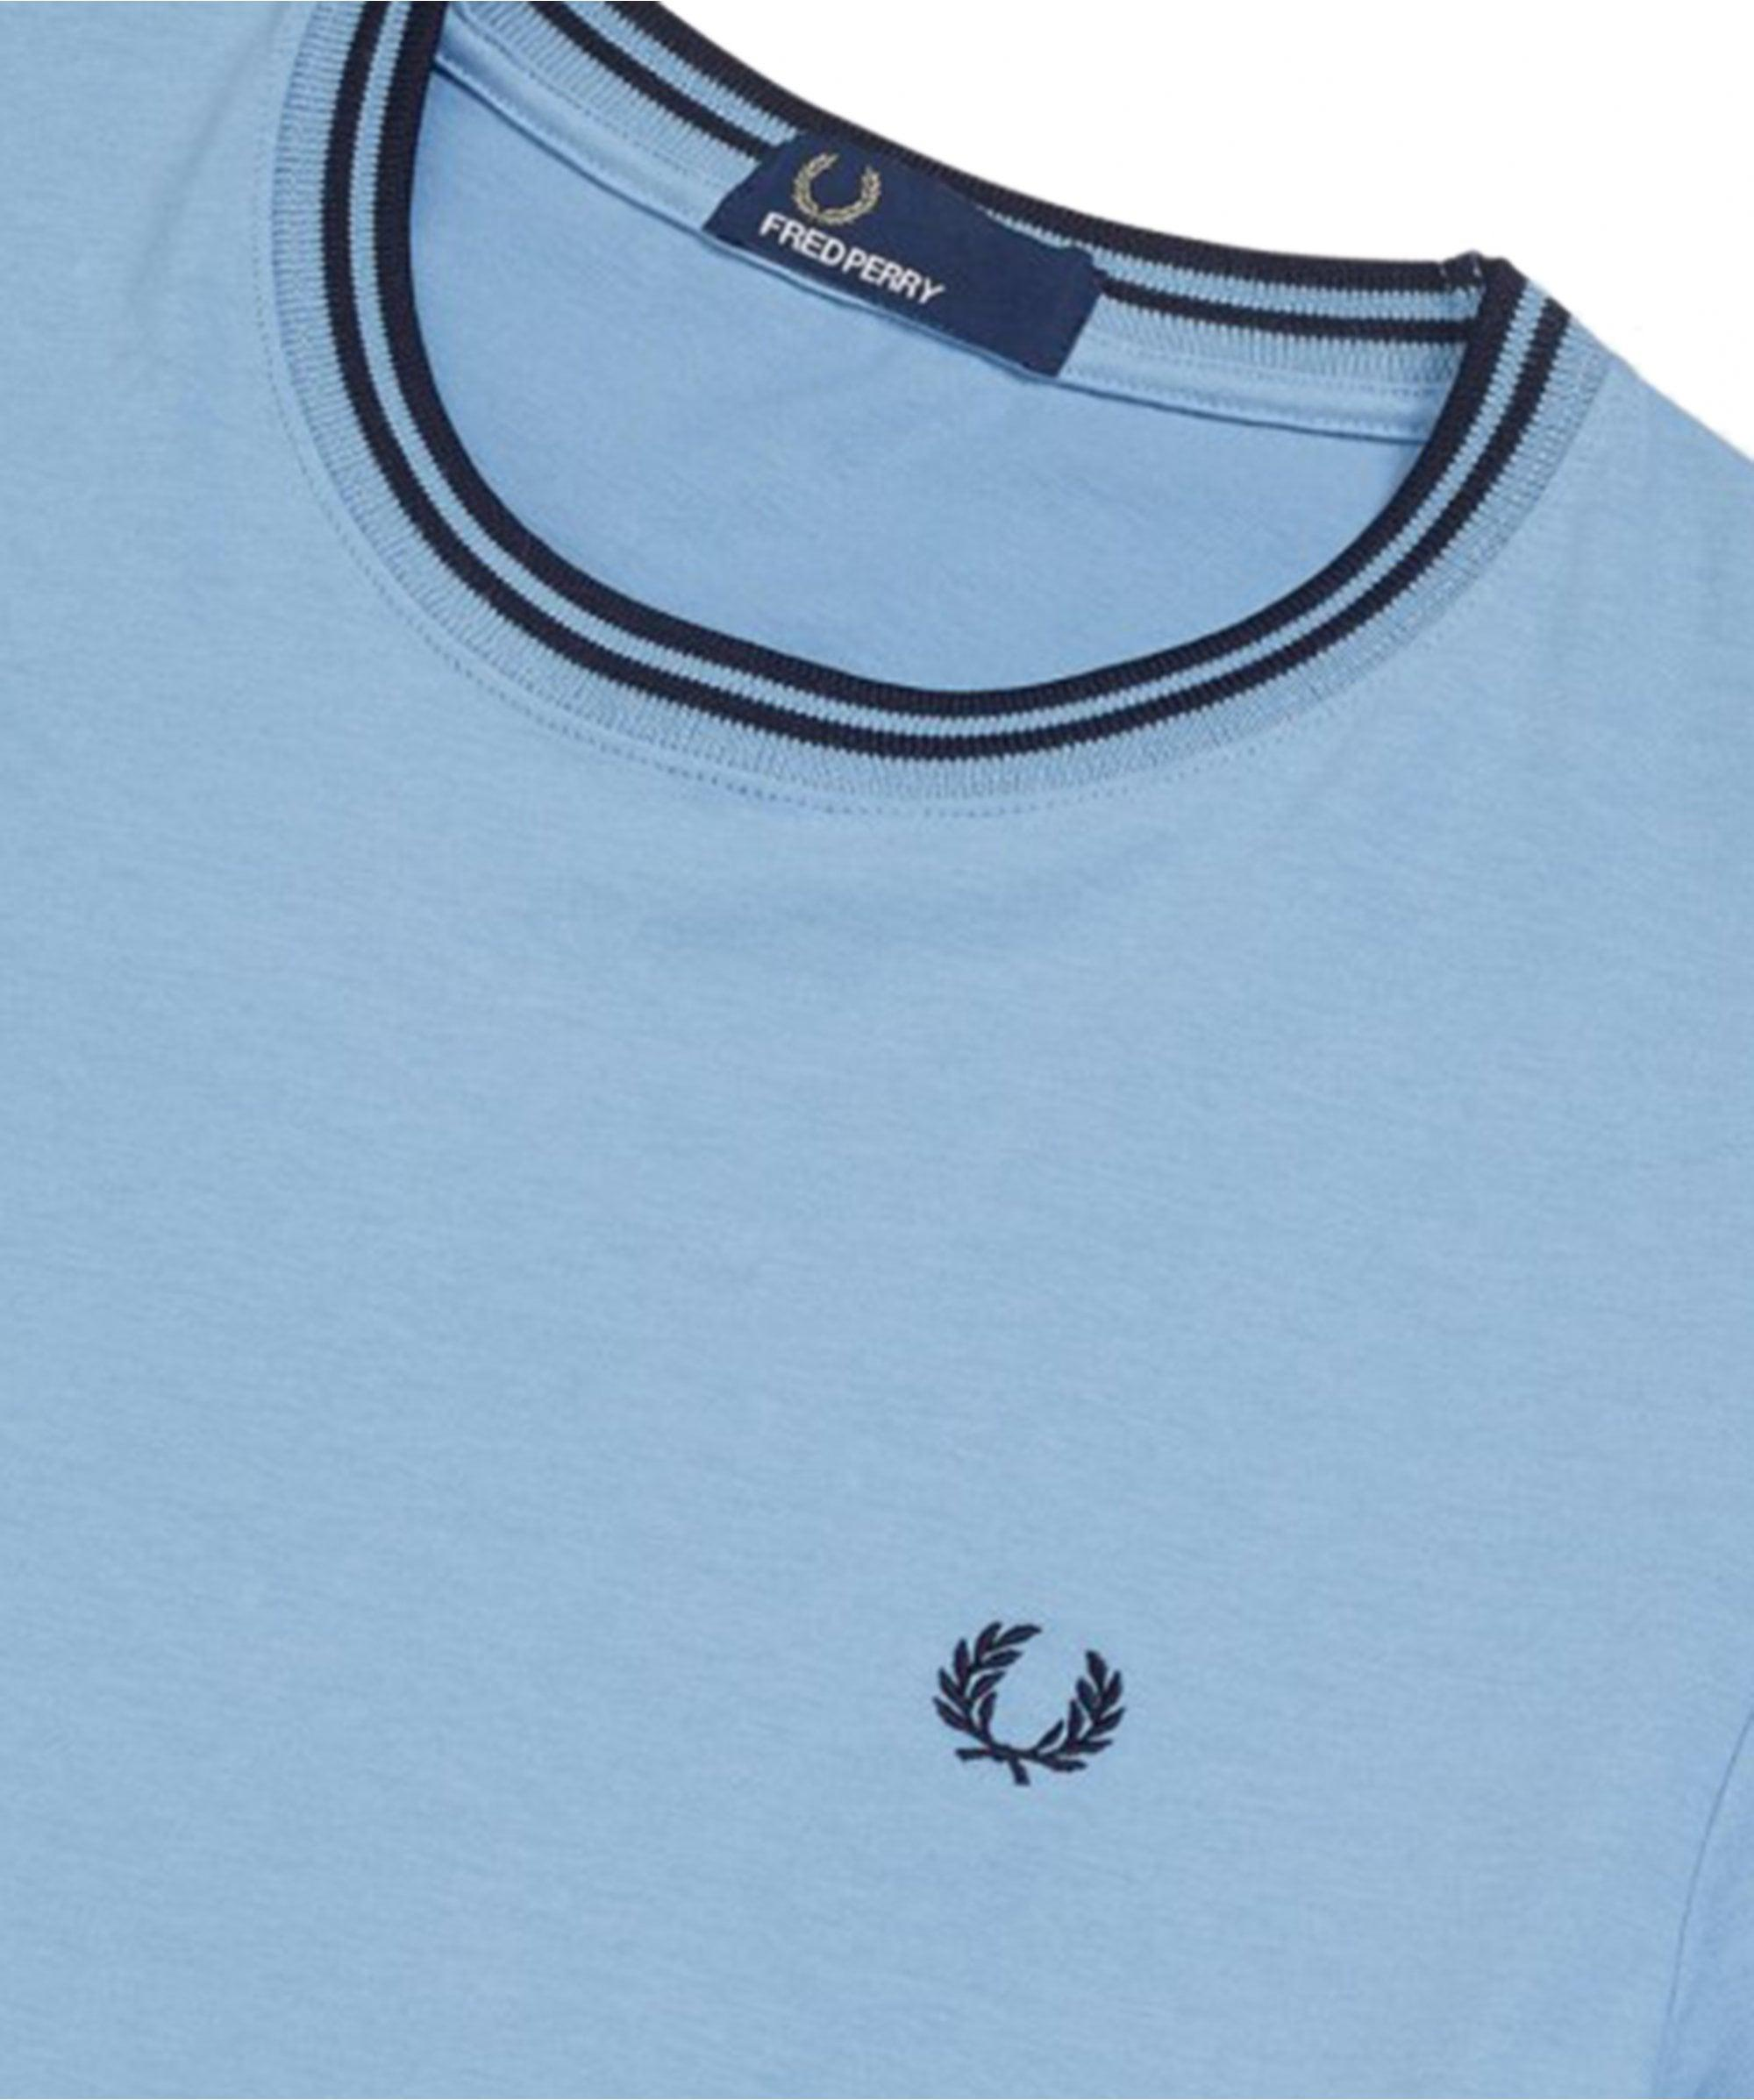 bbe969edb Fred Perry - Blue Twin Tipped T-shirt M1588 444 for Men - Lyst. View  fullscreen